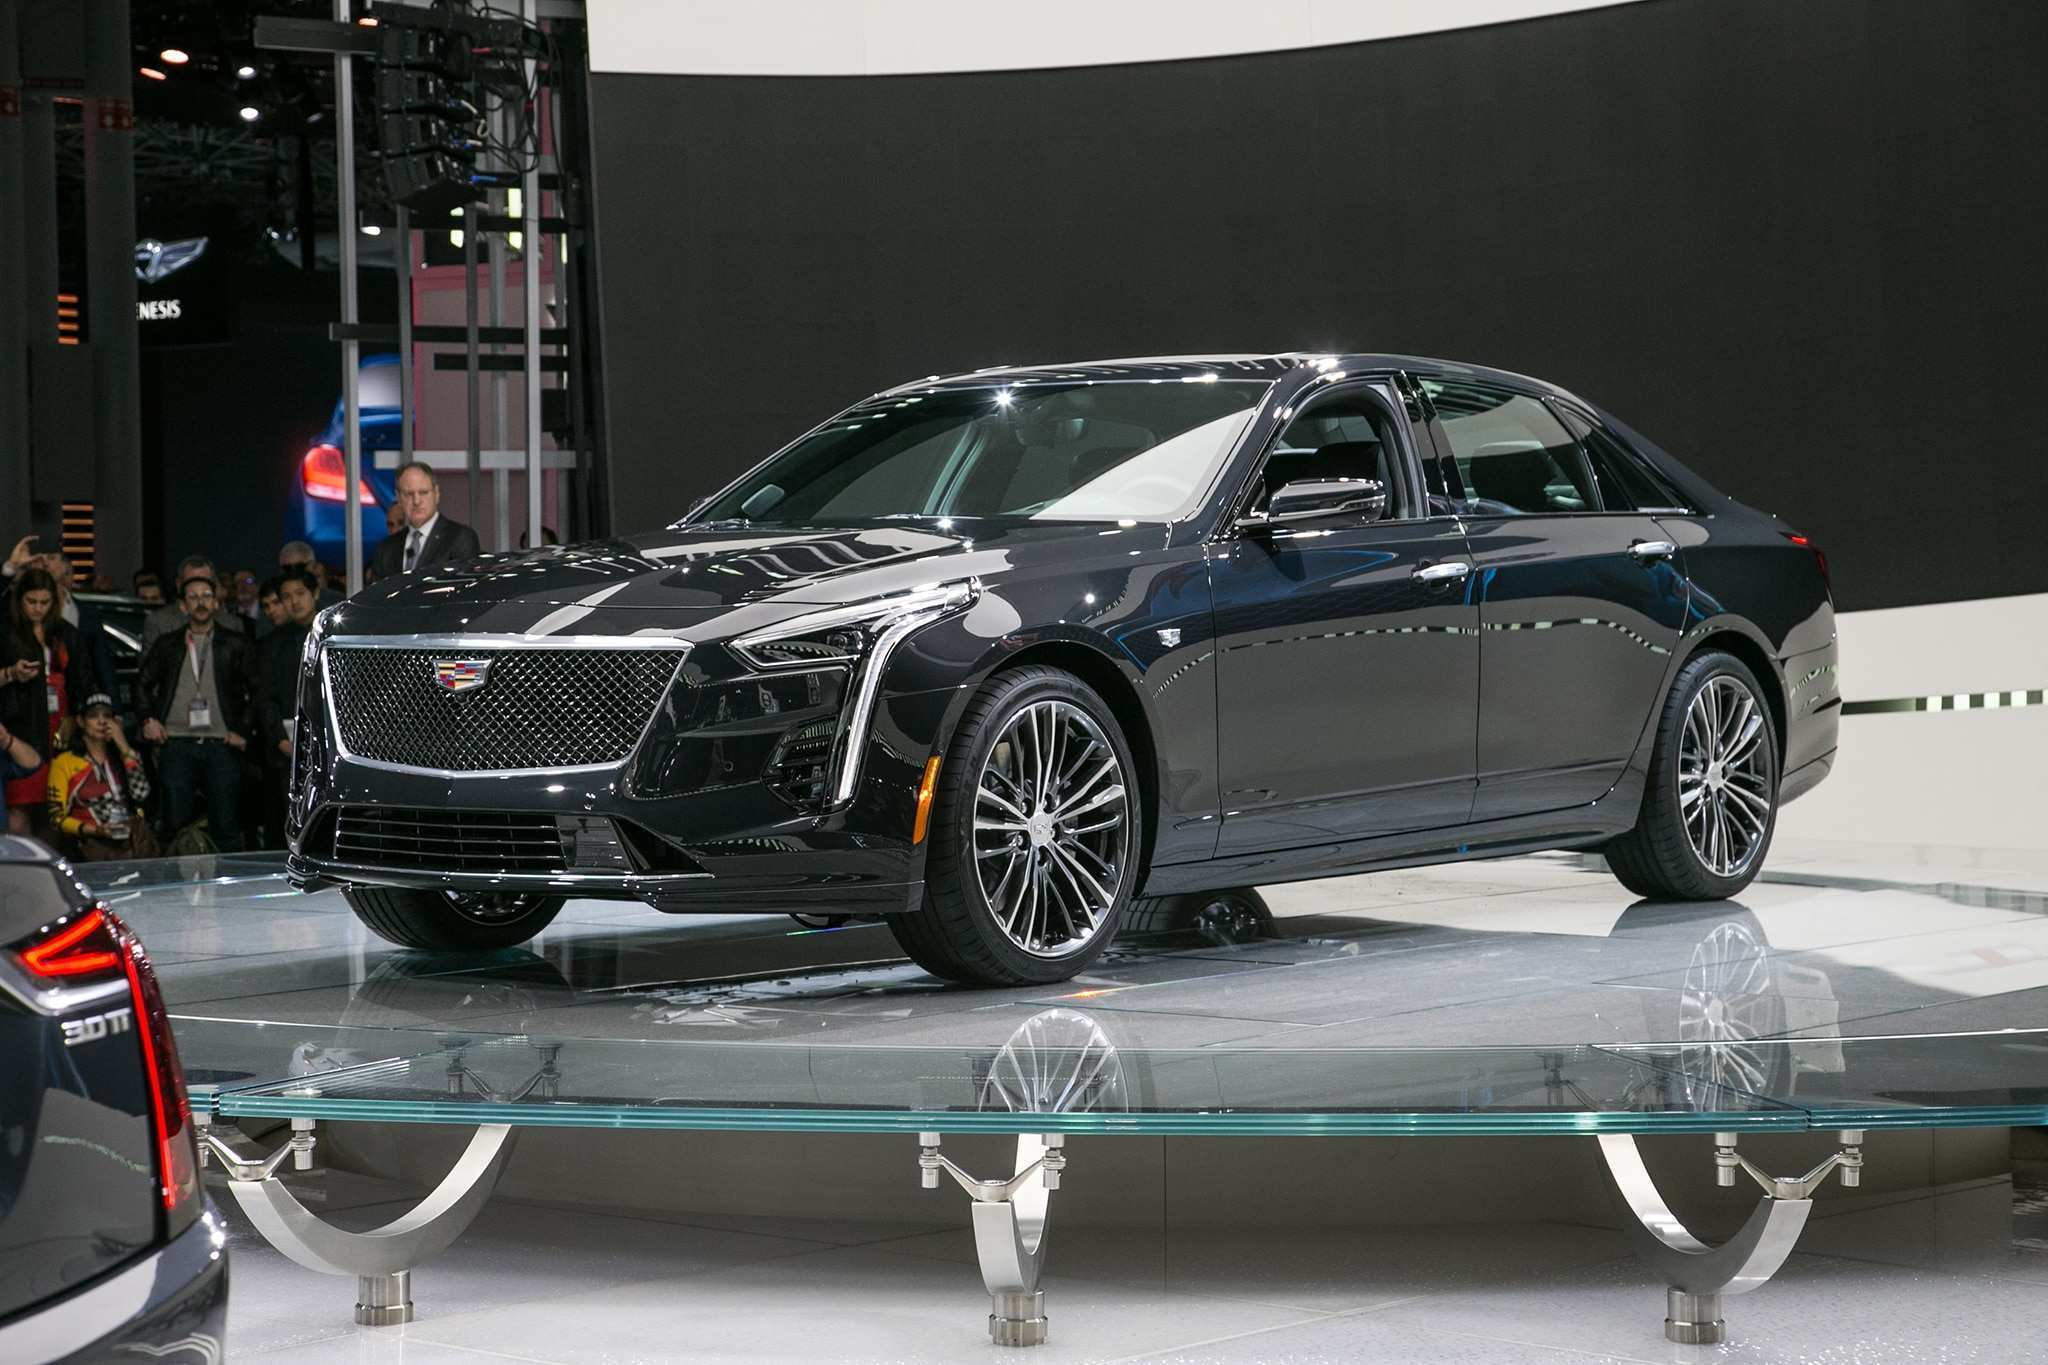 44 All New Cadillac 2019 Launches Engine Exterior with Cadillac 2019 Launches Engine